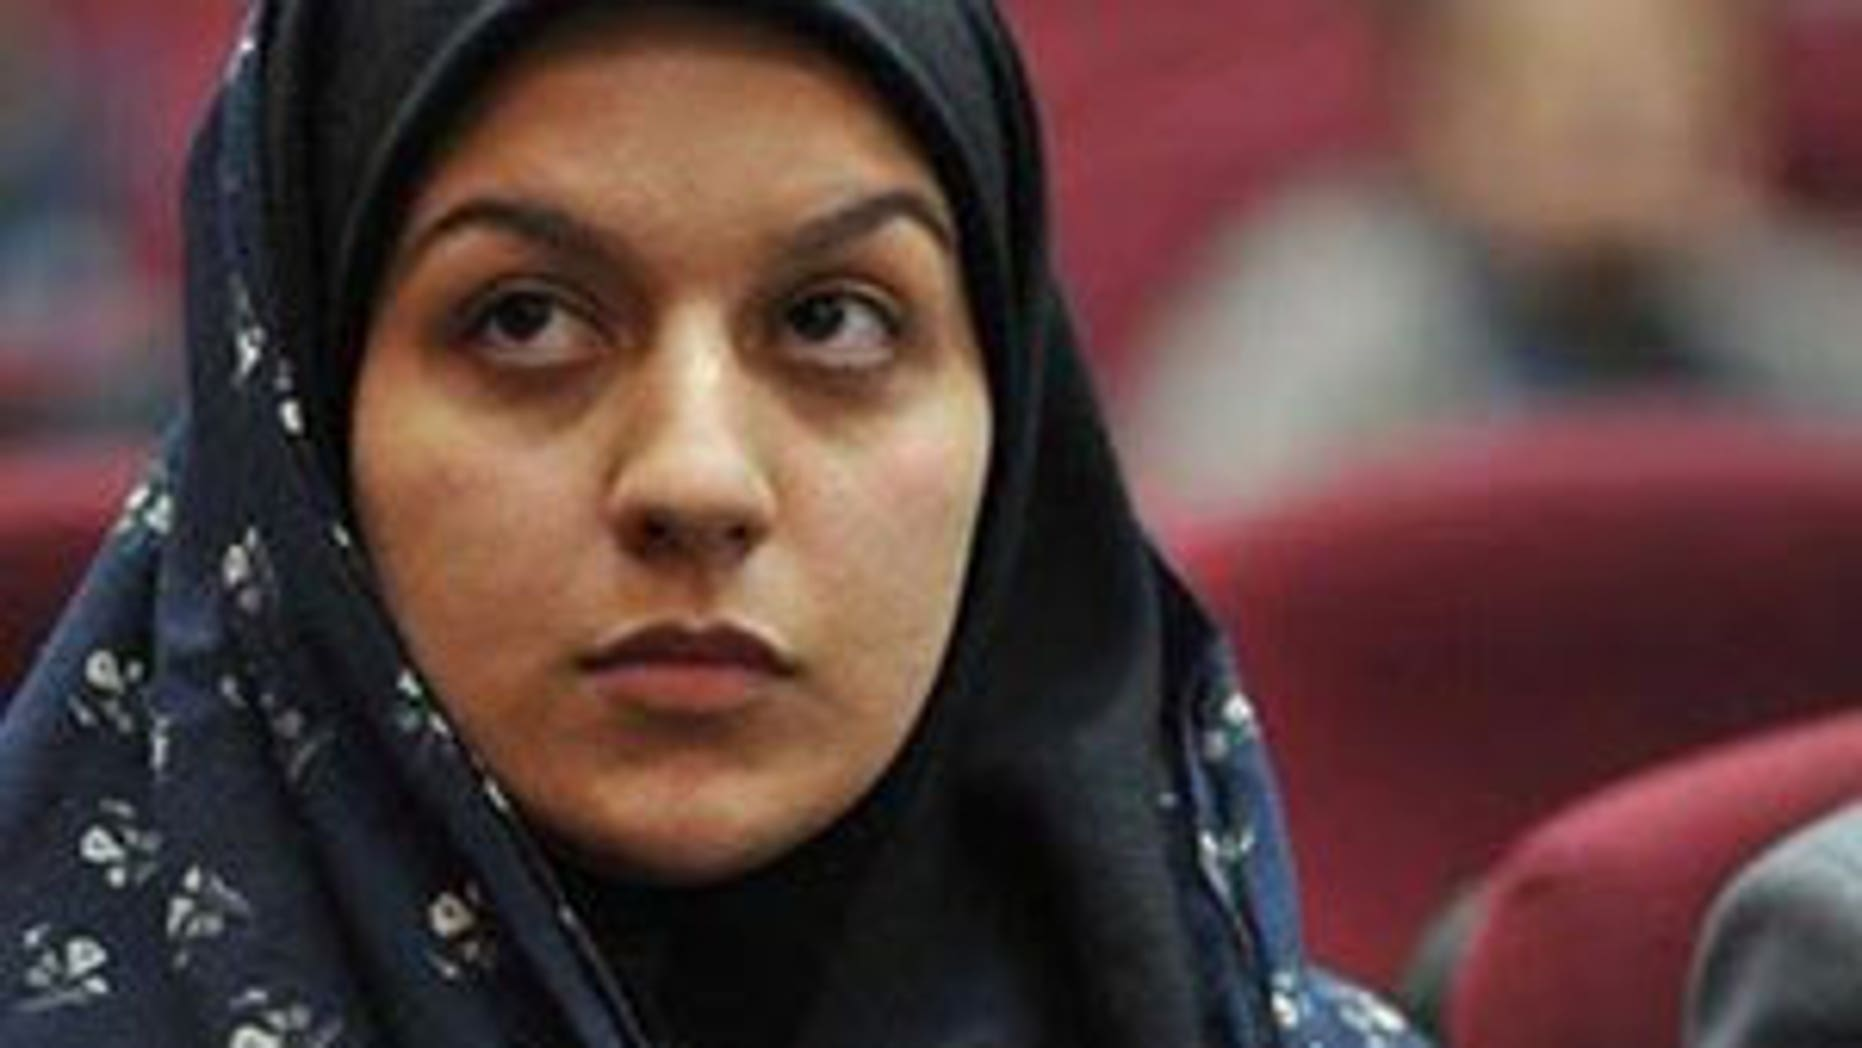 Rayhaneh Jabbari faces execution in Iran on Tuesday, seven years after being sentenced to death for allegedly stabbing a man she says tried to rape her.